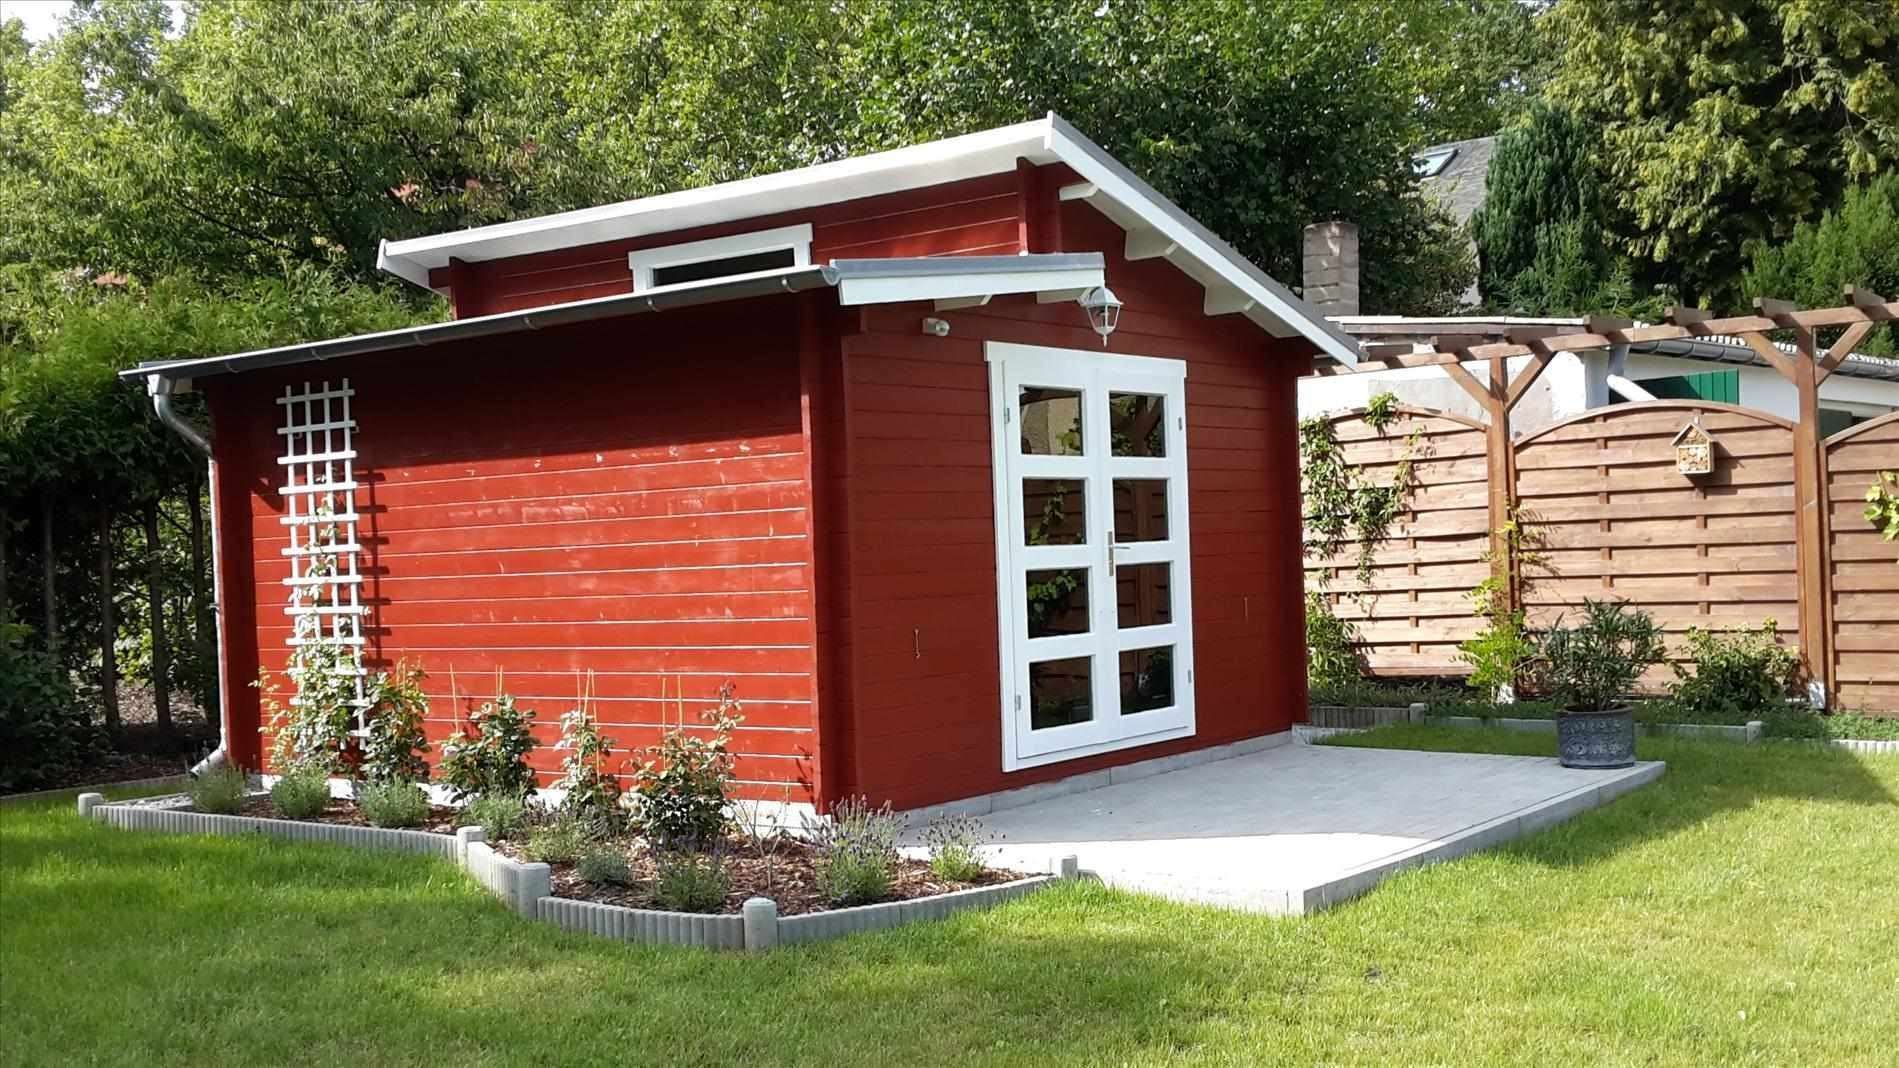 34 Luxus Garten Blockhaus Garten Gallerie Ideen Outdoor